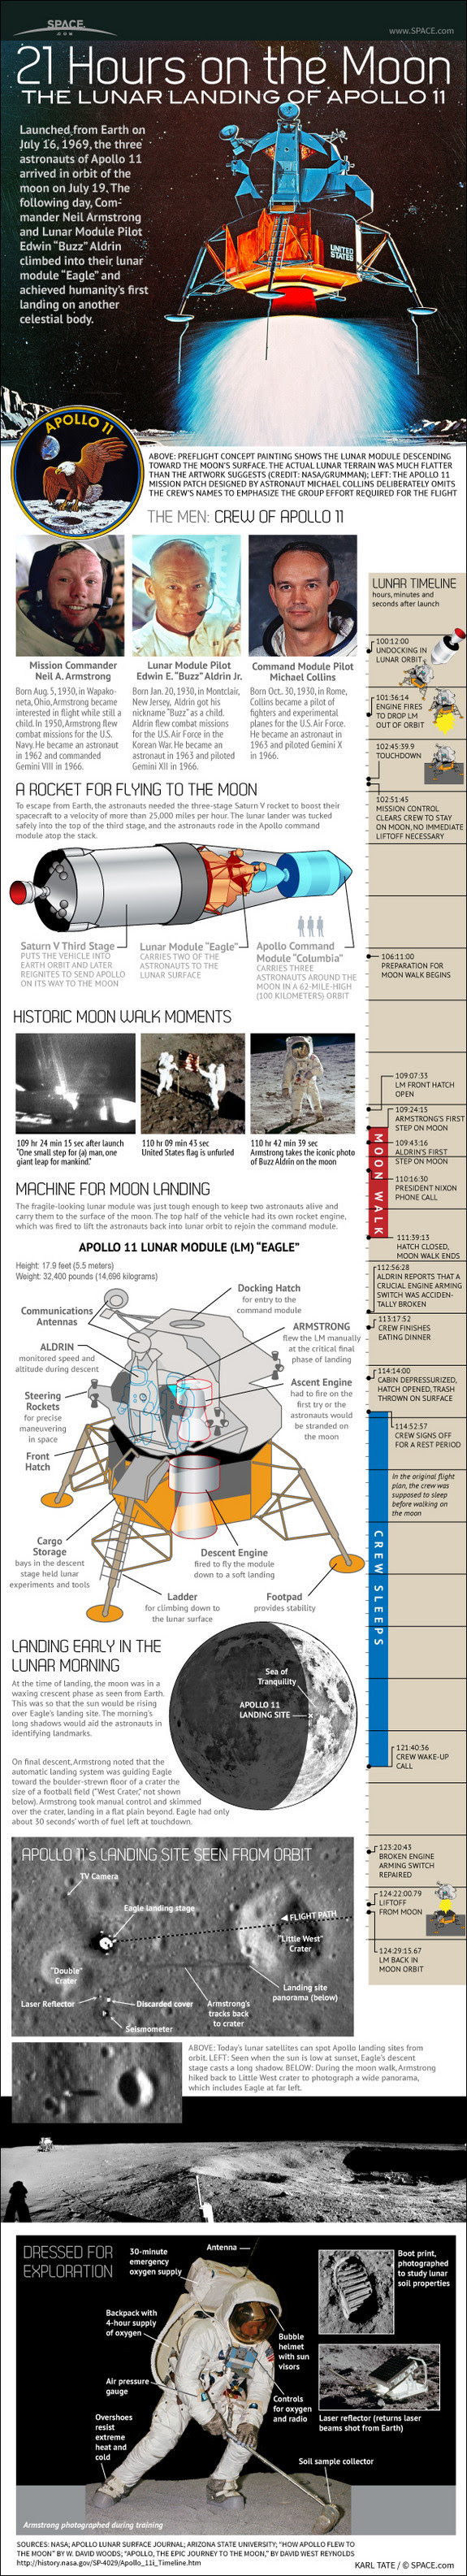 Infographic: 21 Hours on the Moon The Lunar Landing of Apollo 11 #infographic